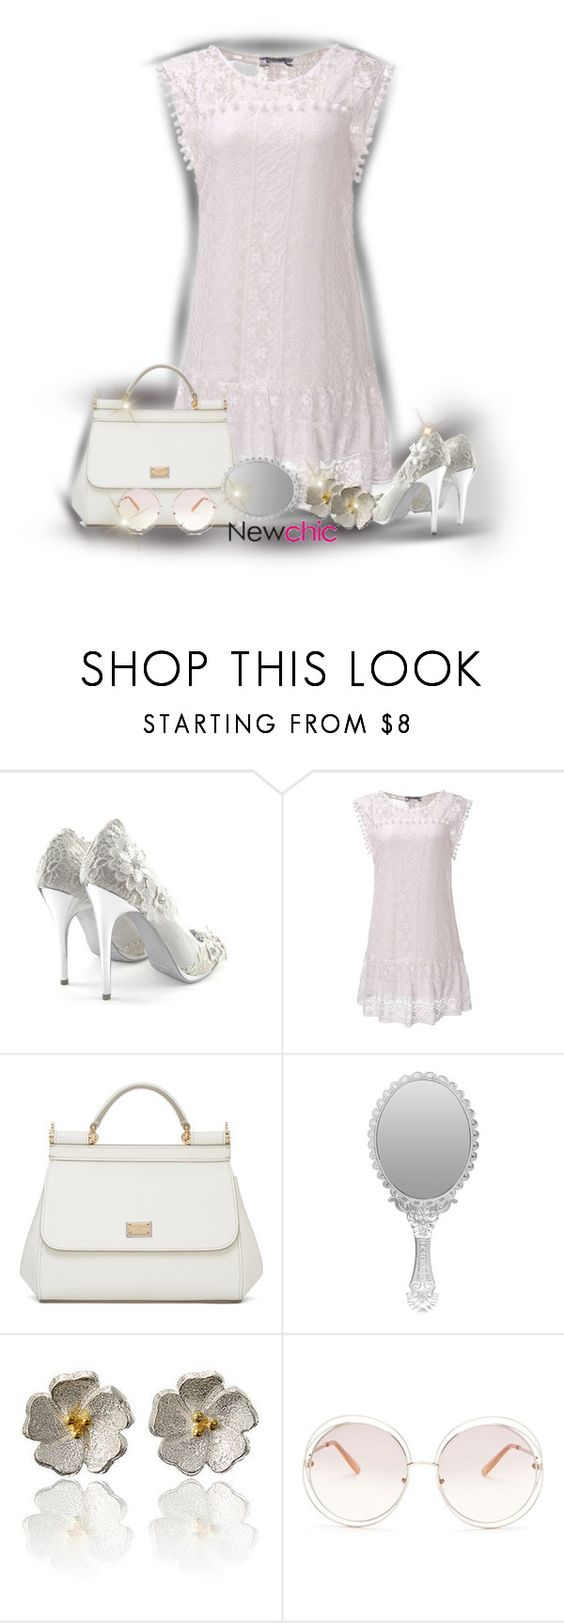 """Newchic"" by sarahguo ❤ liked on Polyvore featuring Dolce&Gabbana and Chloé"